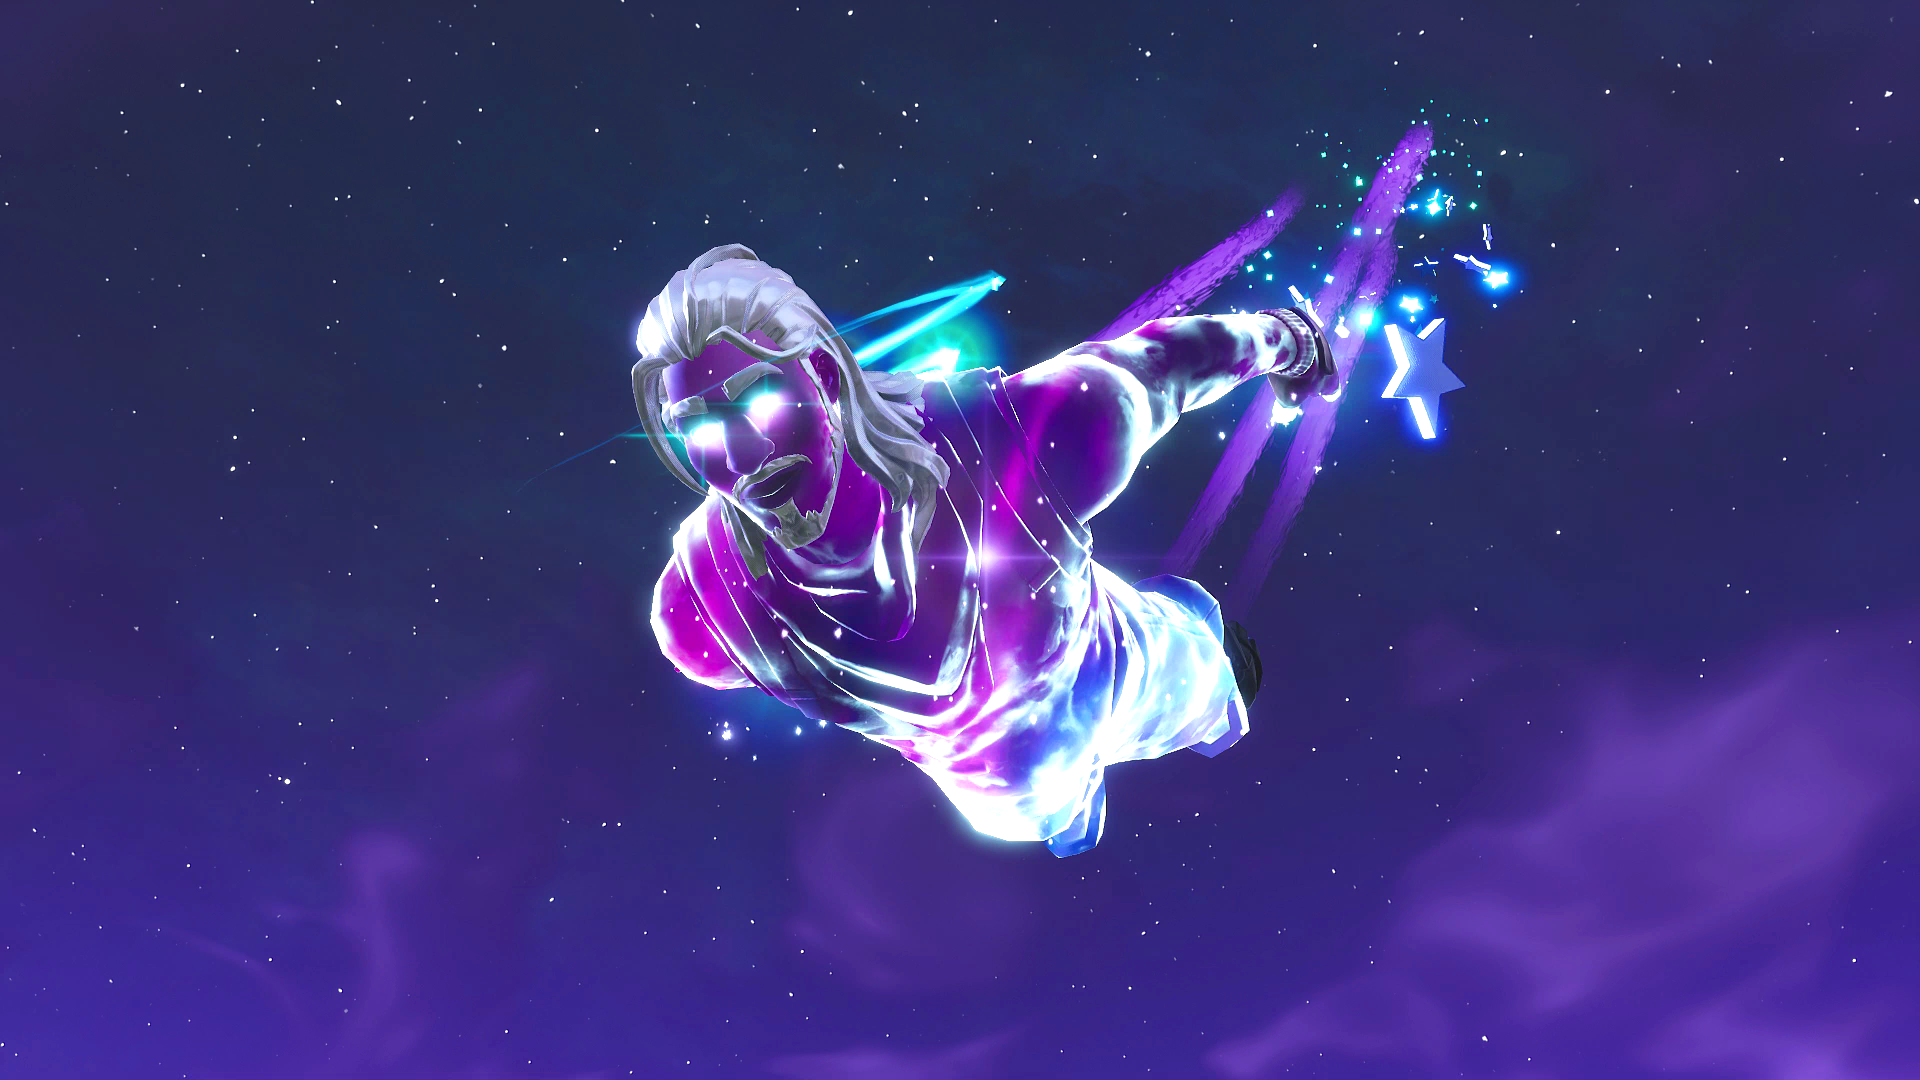 Leaks reveal Fortnite Galaxy skin owners could be getting a spray 1920x1080